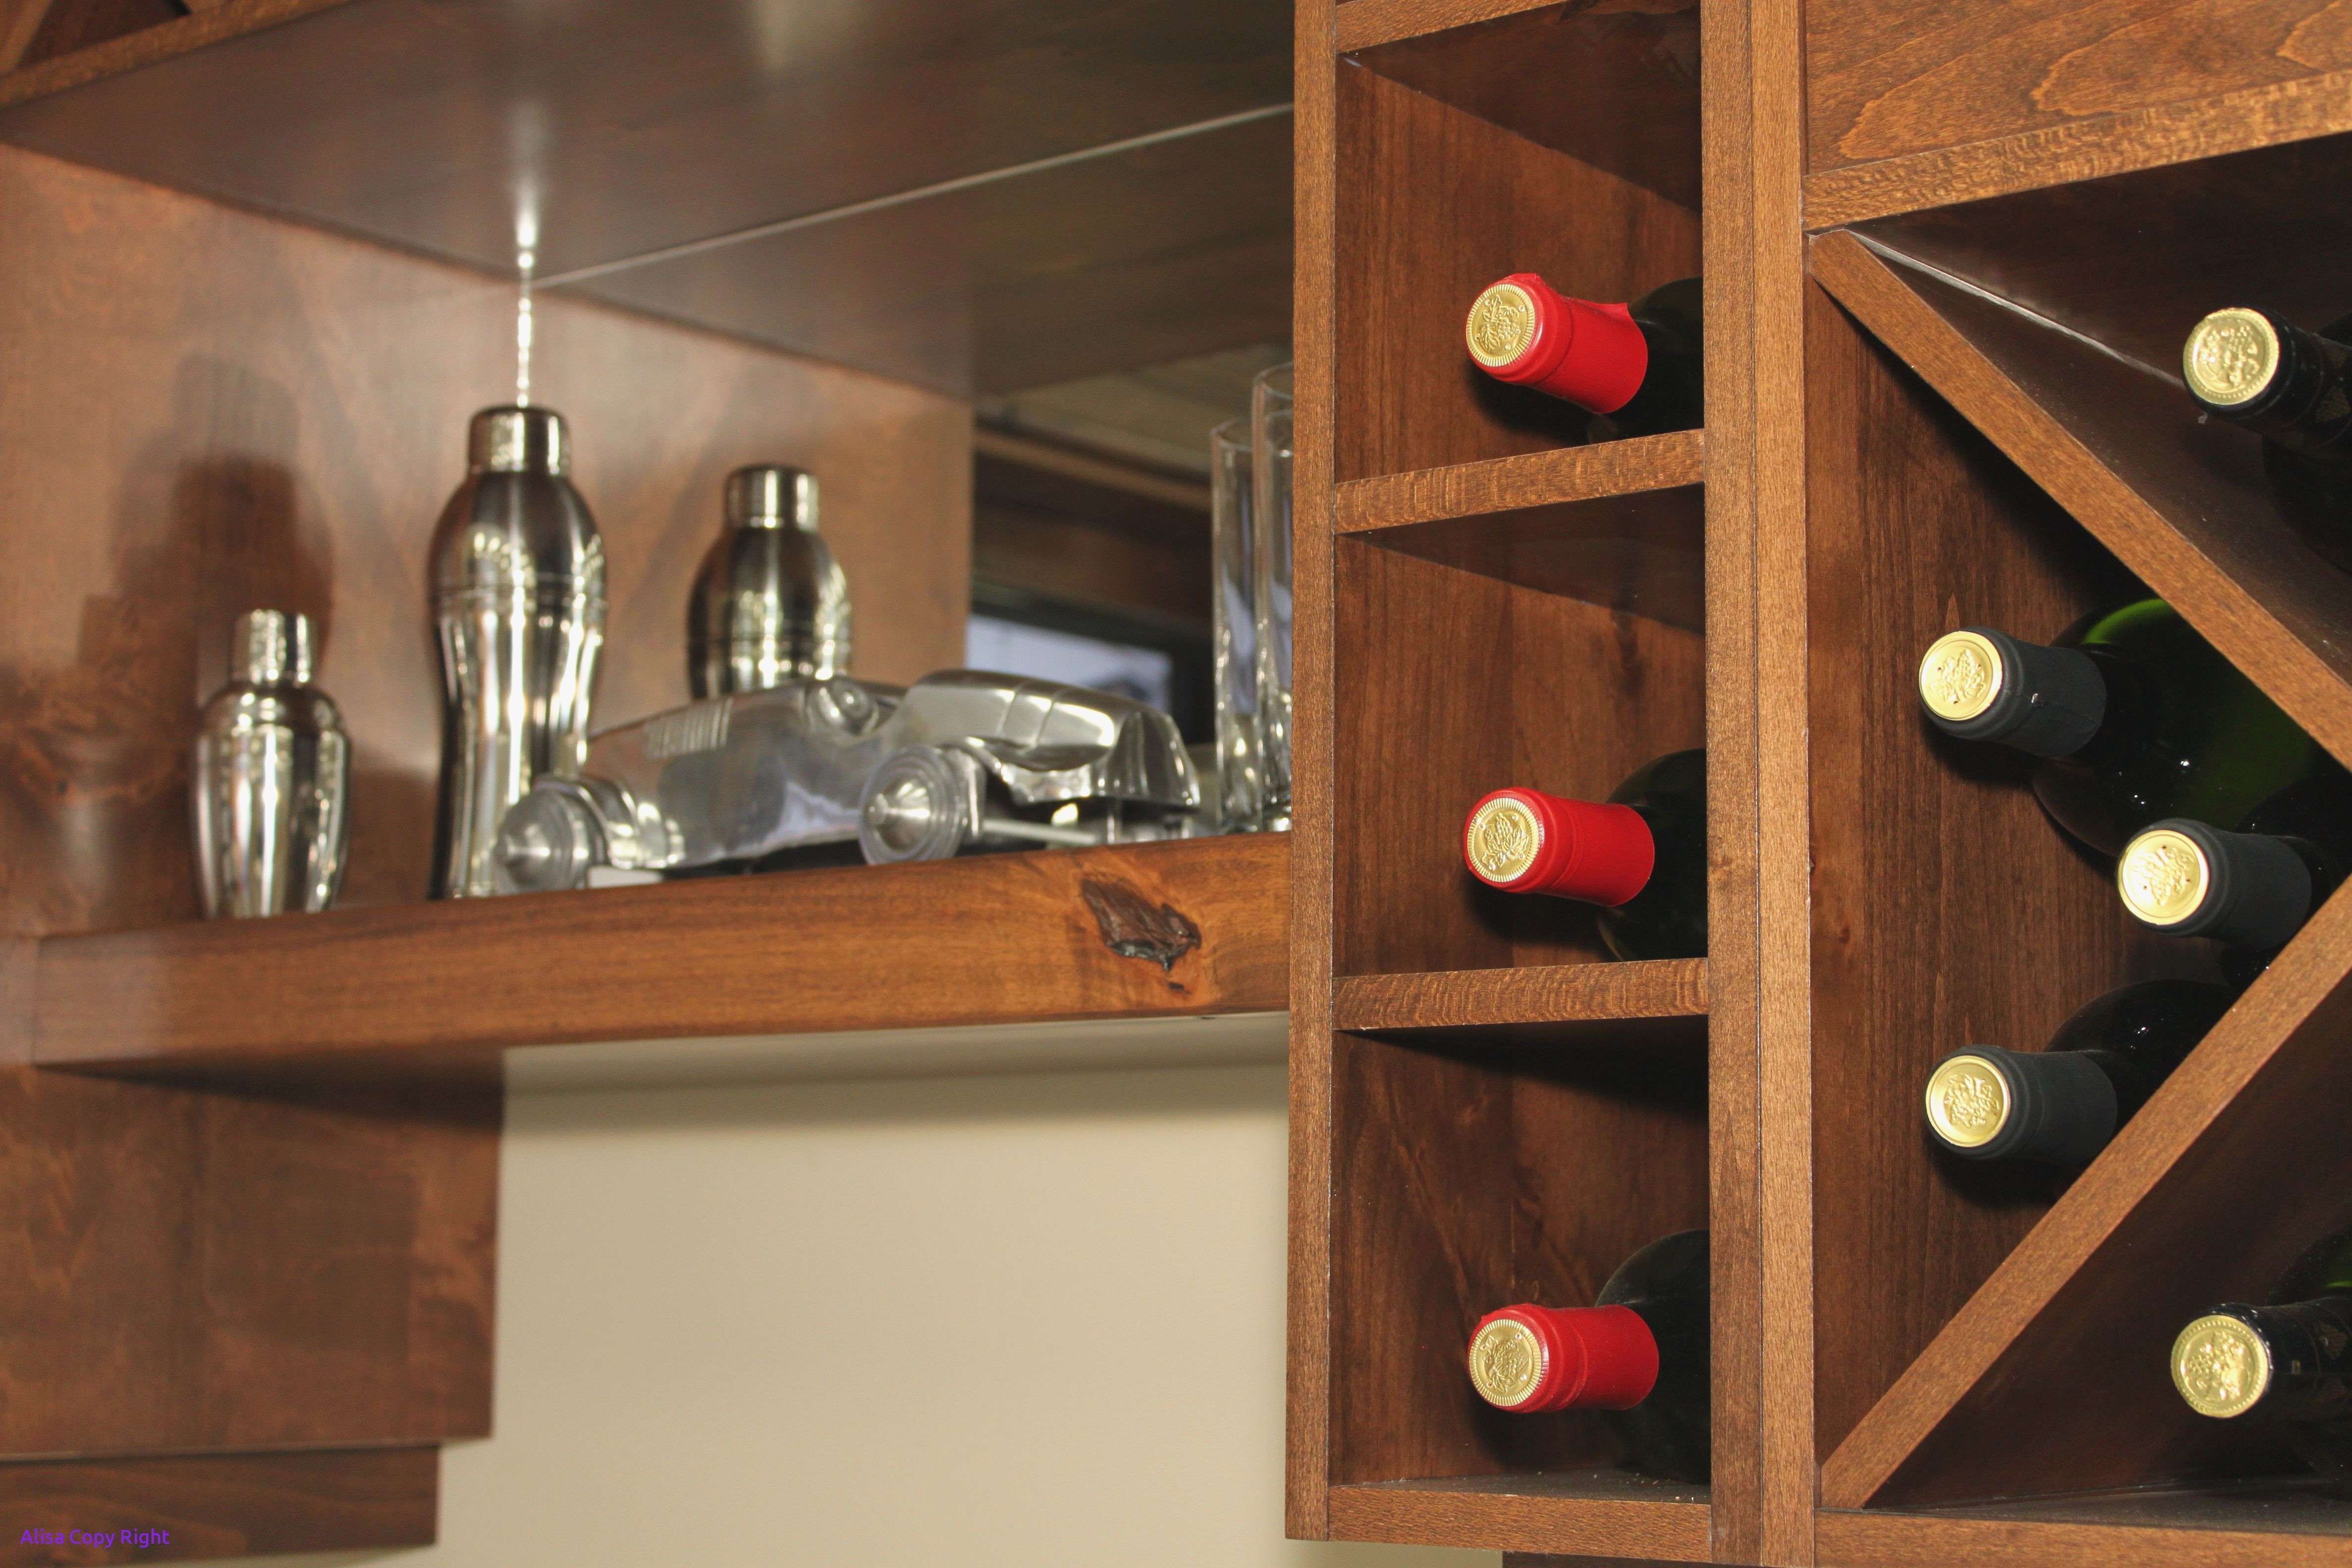 Beautiful Diy Wine Rack,   #homedecoration #homedecorations #homedecorationideas #homedecorationtrends   Informations About Beautiful Diy Wine Rack,   #homedecoration #homedecorations #homedecorationideas... Pin  You can easily use my profile to examine different pin types. Beautiful Diy Wine Rack,   #homedecoration #homedecorations #homedecorationideas... pins are as aesthetic and useful as you can use them for decorat... #DIY Wine Rack Box #DIY Wine Rack Reclaimed Wood #DIY Wine Rack Wall